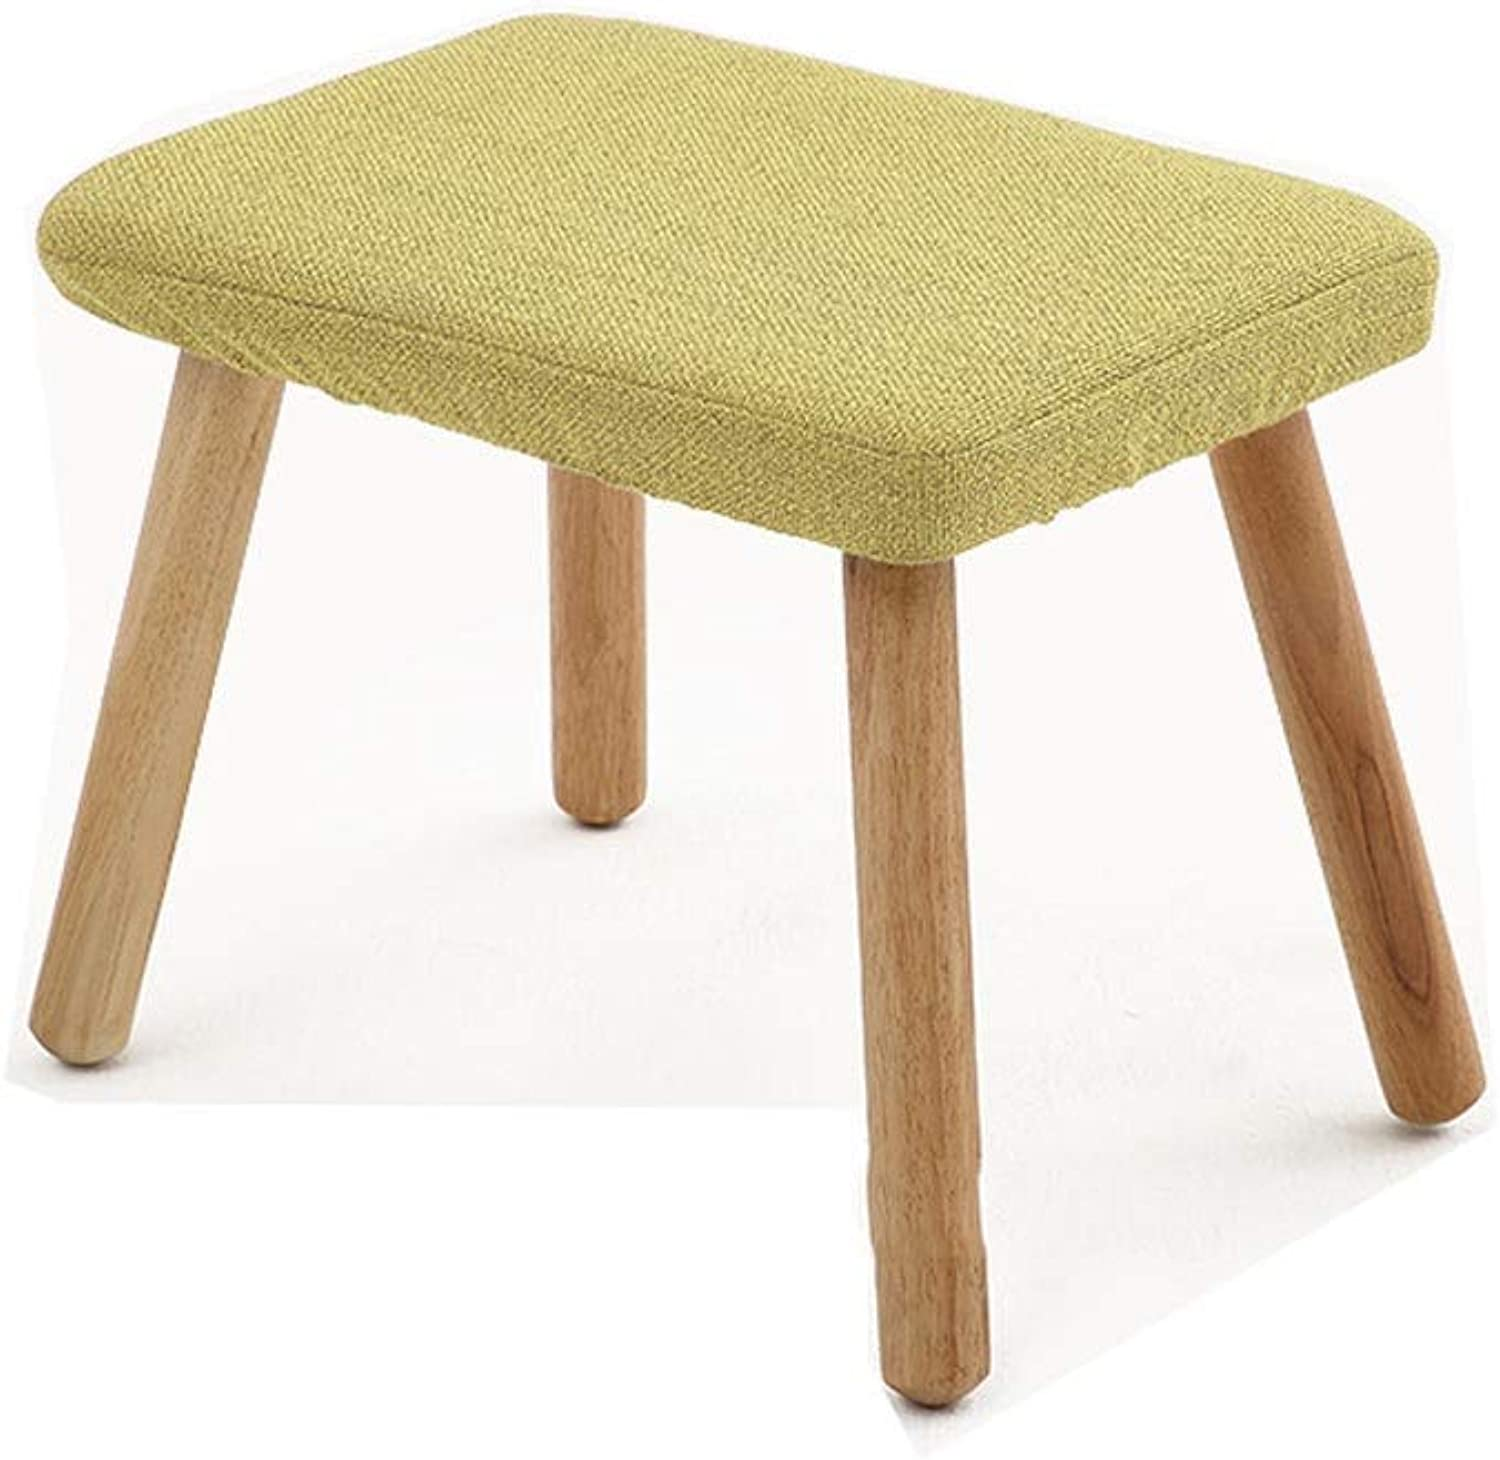 A+ Wooden Stackable Square Stools, Home Living Room Dressing Table Makeup Chair,Padded Cushioned Detachable Linen Four-Legged Stool-34cmX24cmX28cm (color   Green)